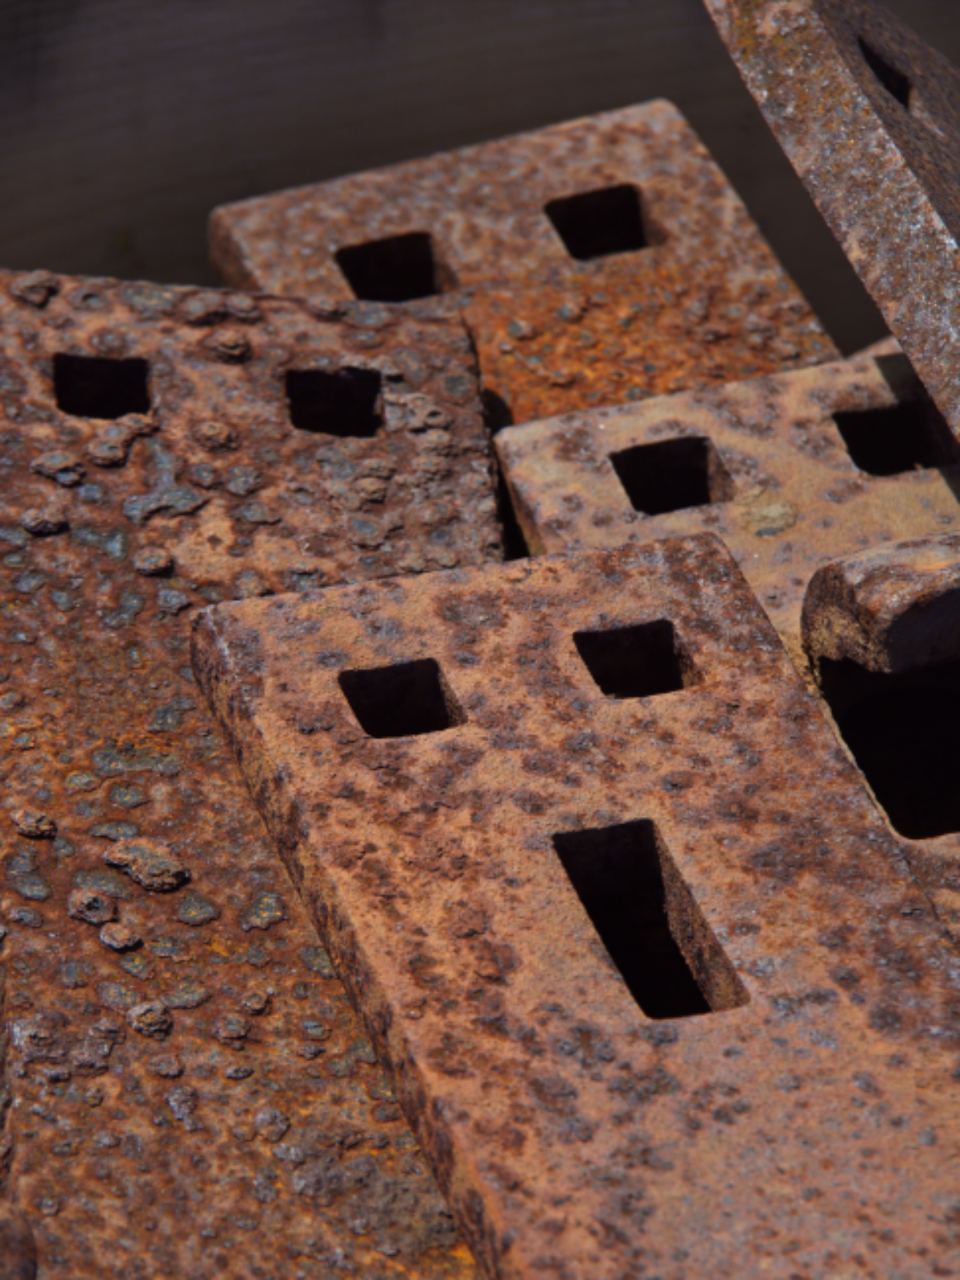 Free stock photo of rusted metal